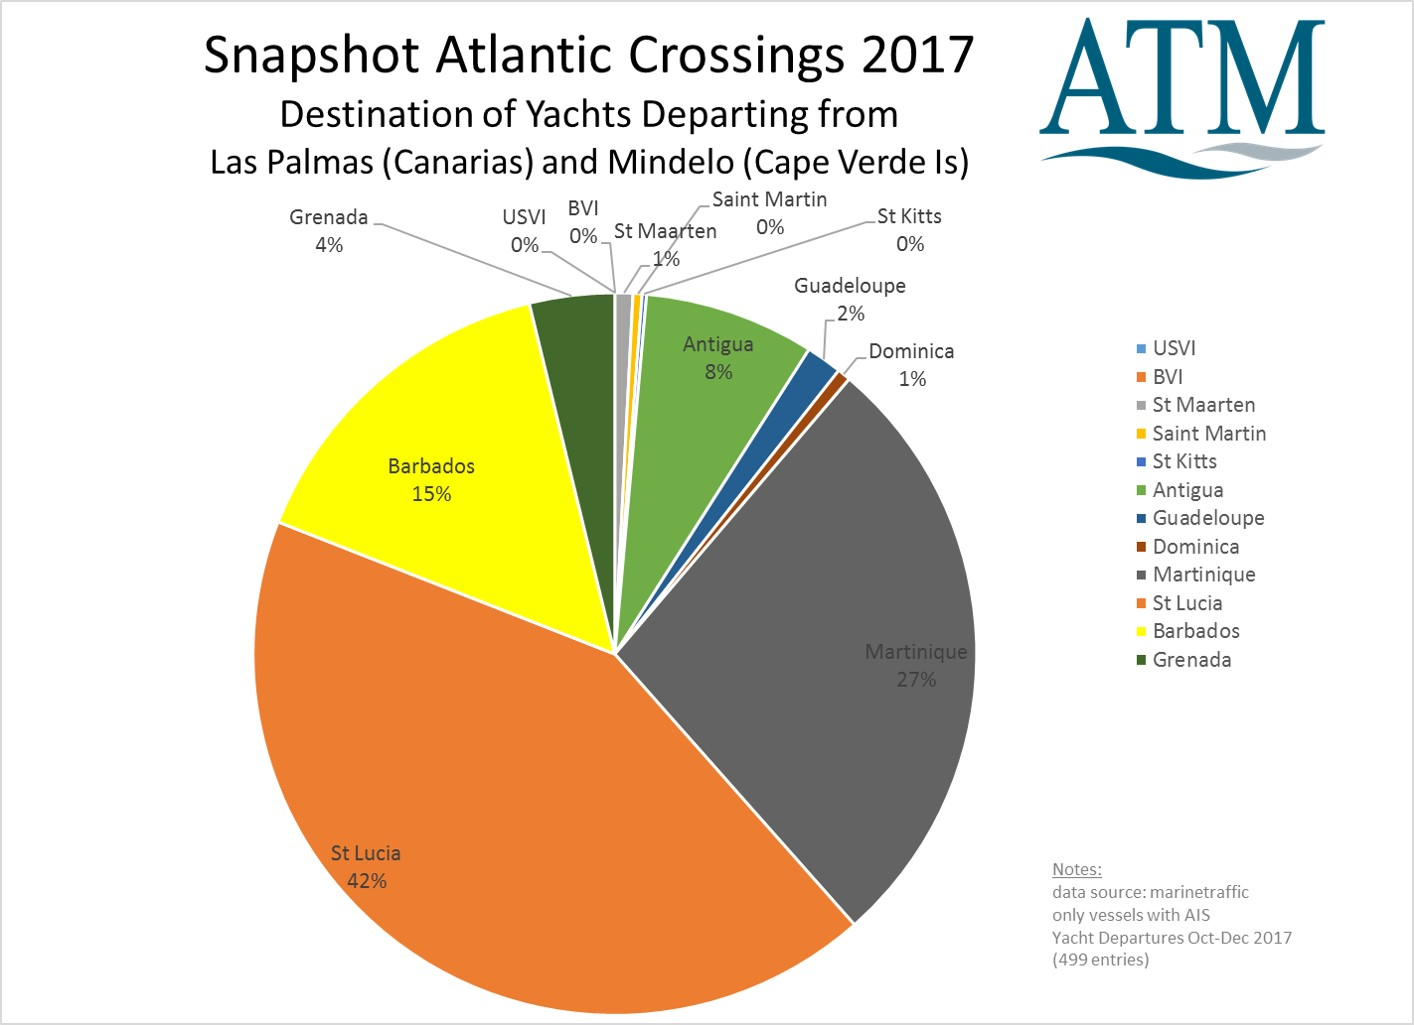 Atlantic Crossings